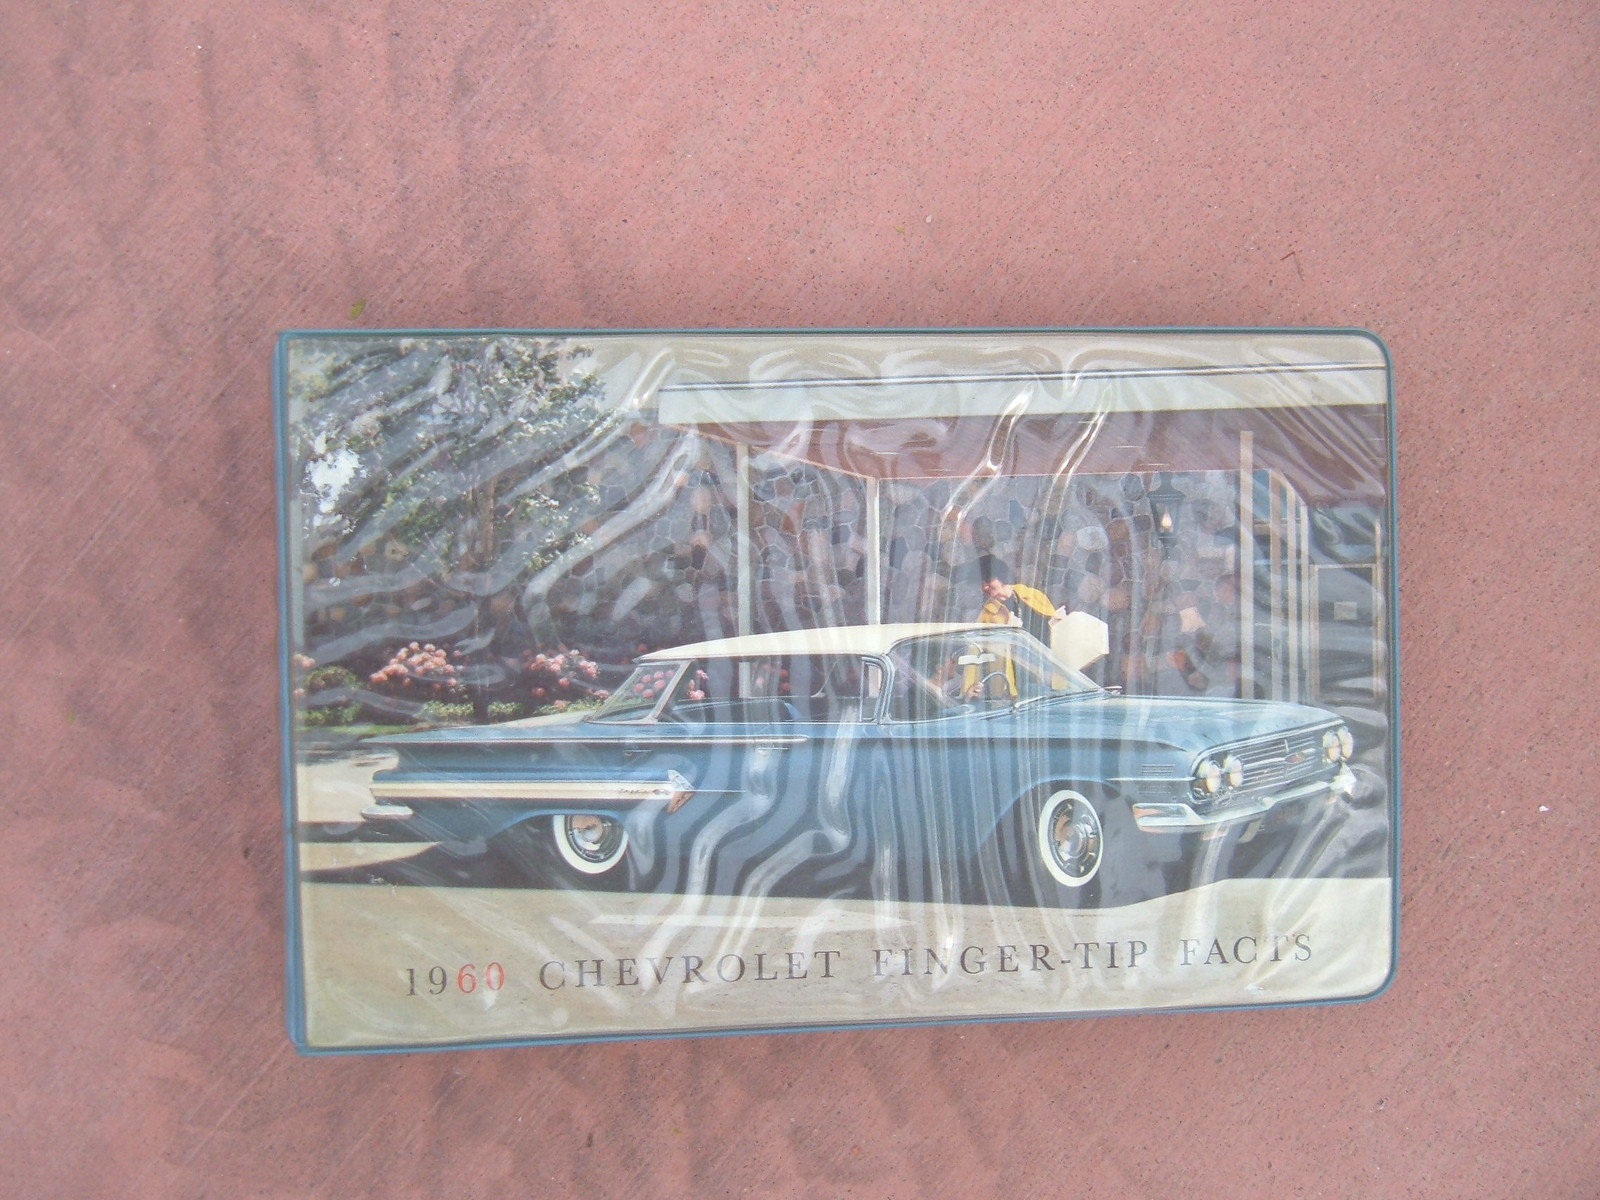 1960 chevrolet impala corvair belair fingertip facts booklet (z 60dealer book)